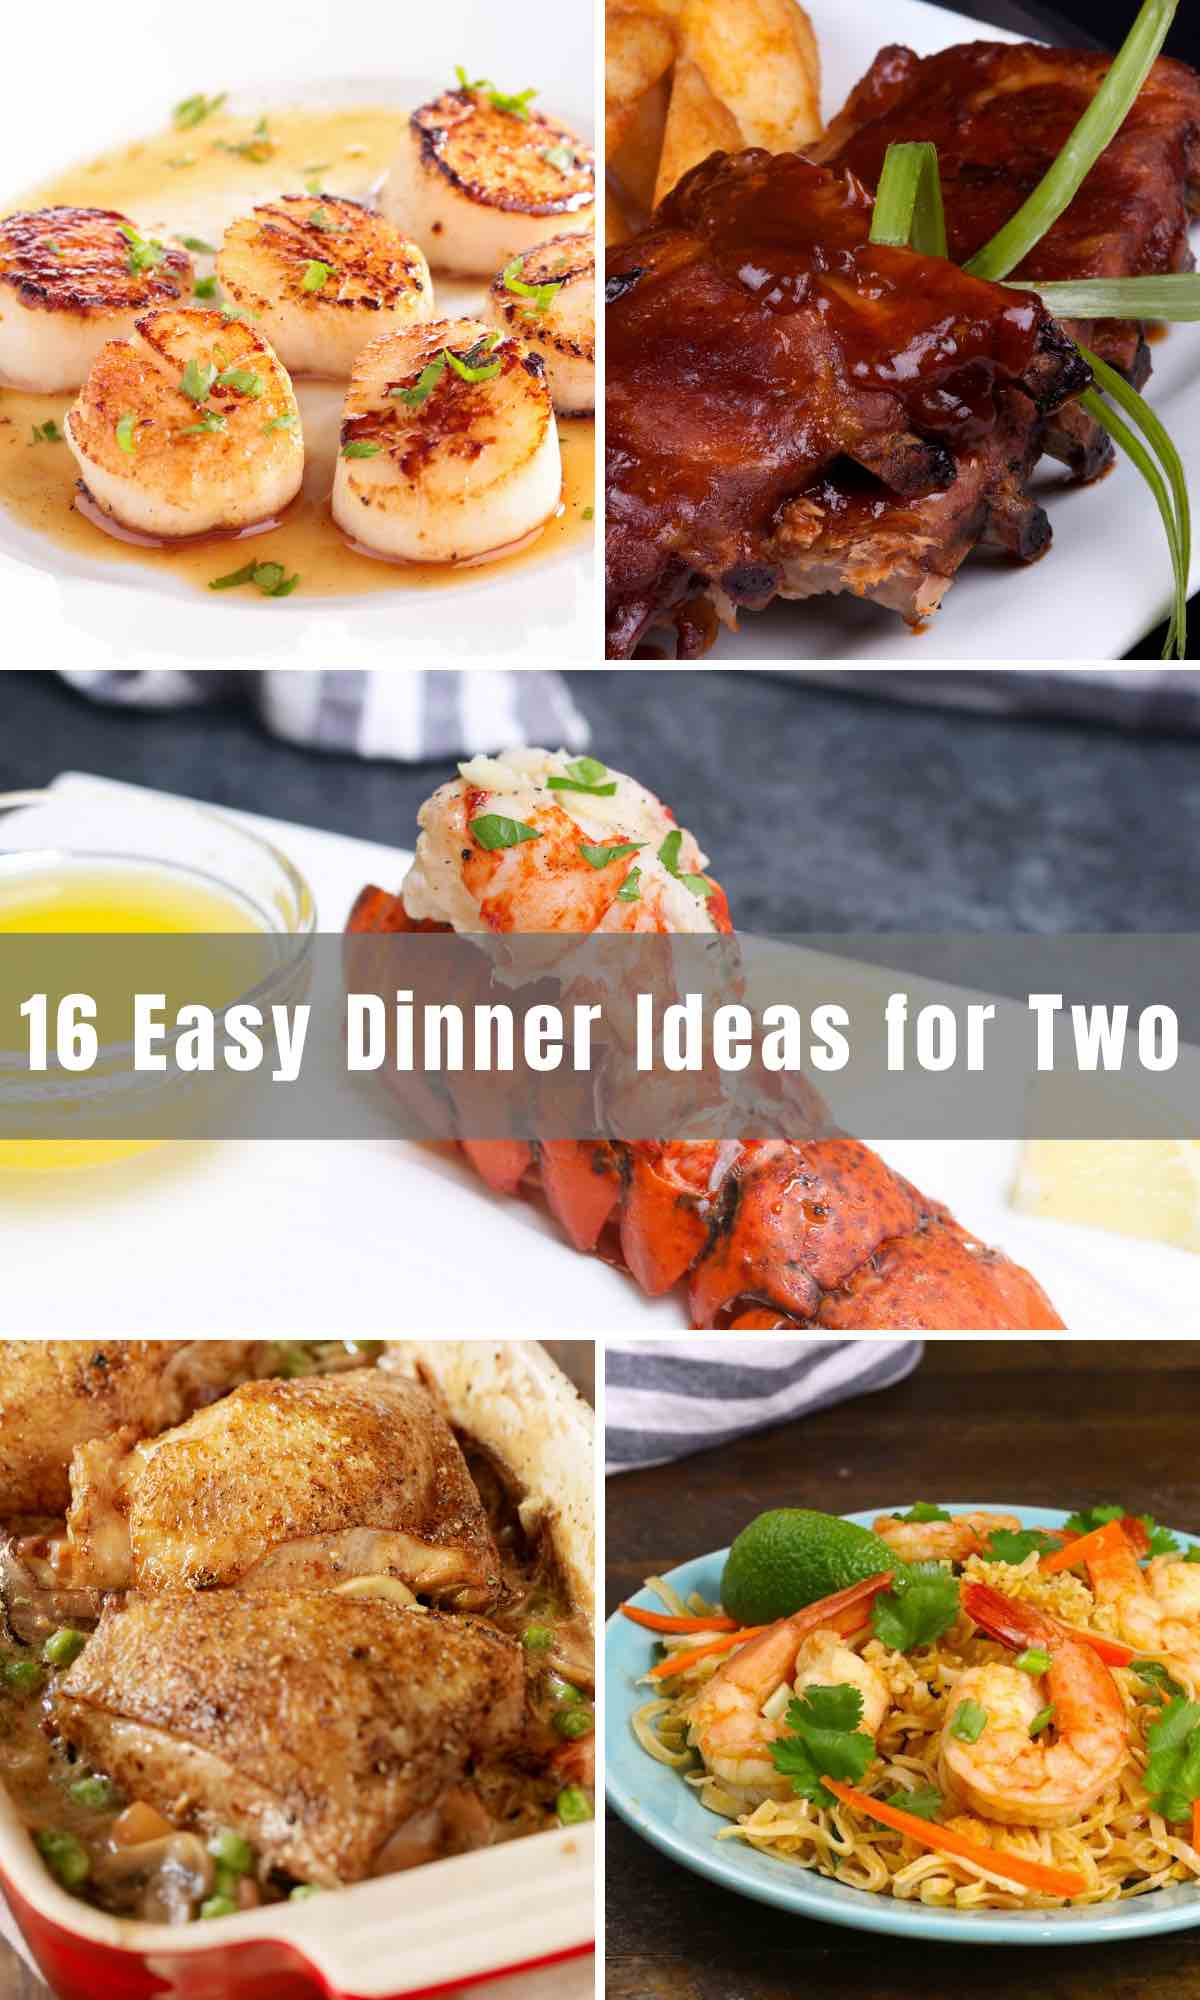 If you're planning a cozy night at home, these Easy Dinner Ideas for Two are perfect for cooking your own date-night meal. From healthy to comforting to completely indulgent, you'll find some dishes below that will satisfy both you and your date! For more Valentine's or anniversary dinner recipes, check out our Romantic Dinner Ideas and Fancy Dessert Recipes.